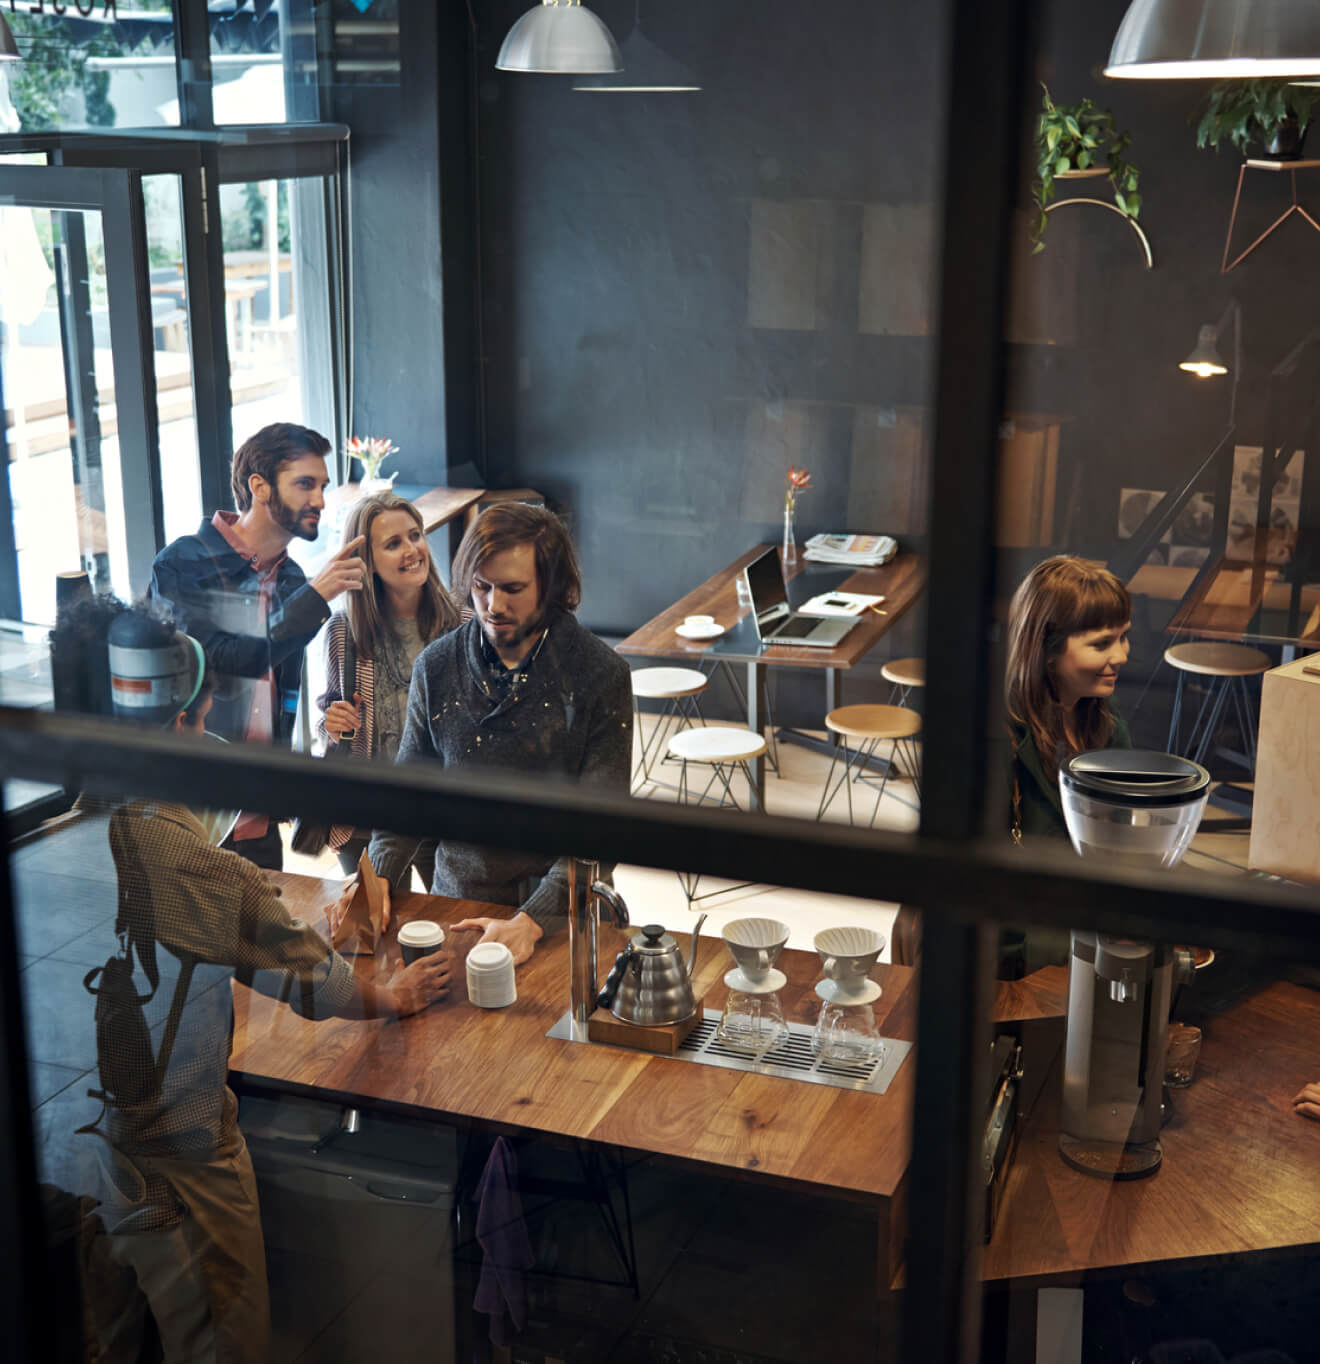 People buying at a coffee shop